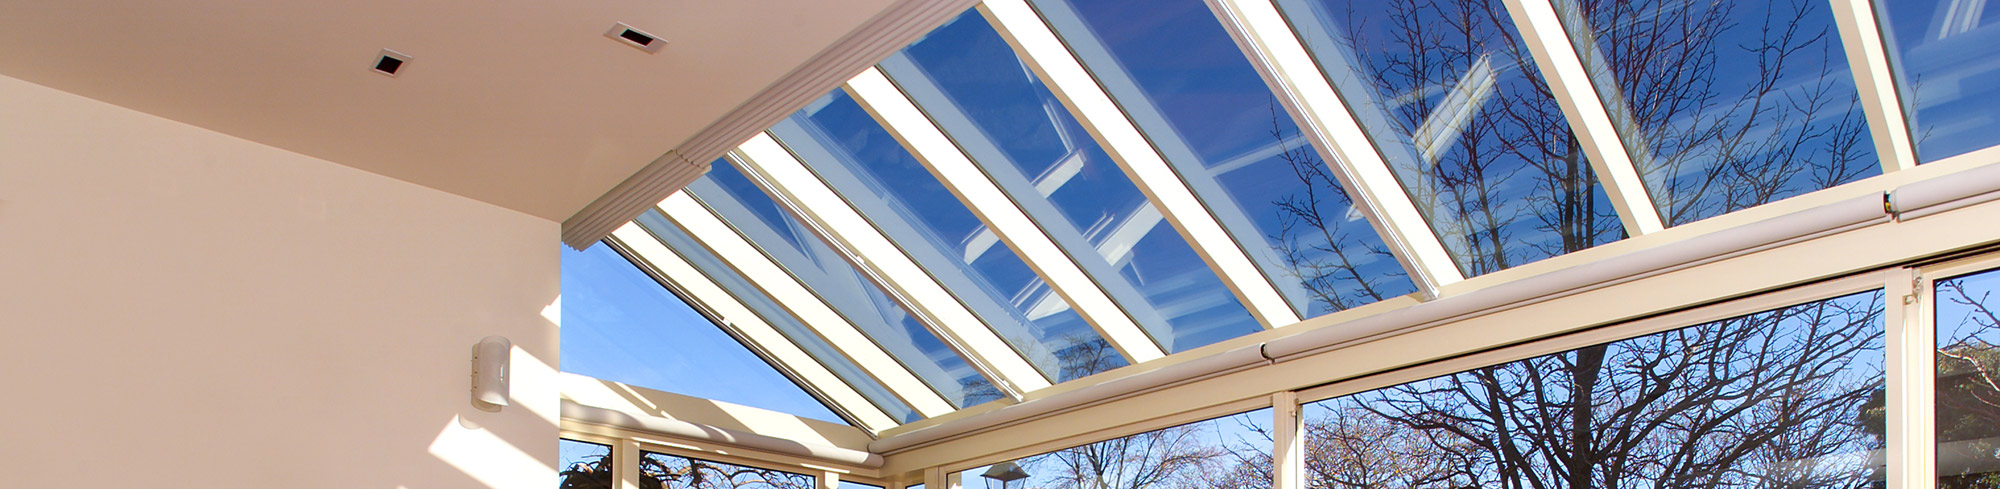 Slider skylights